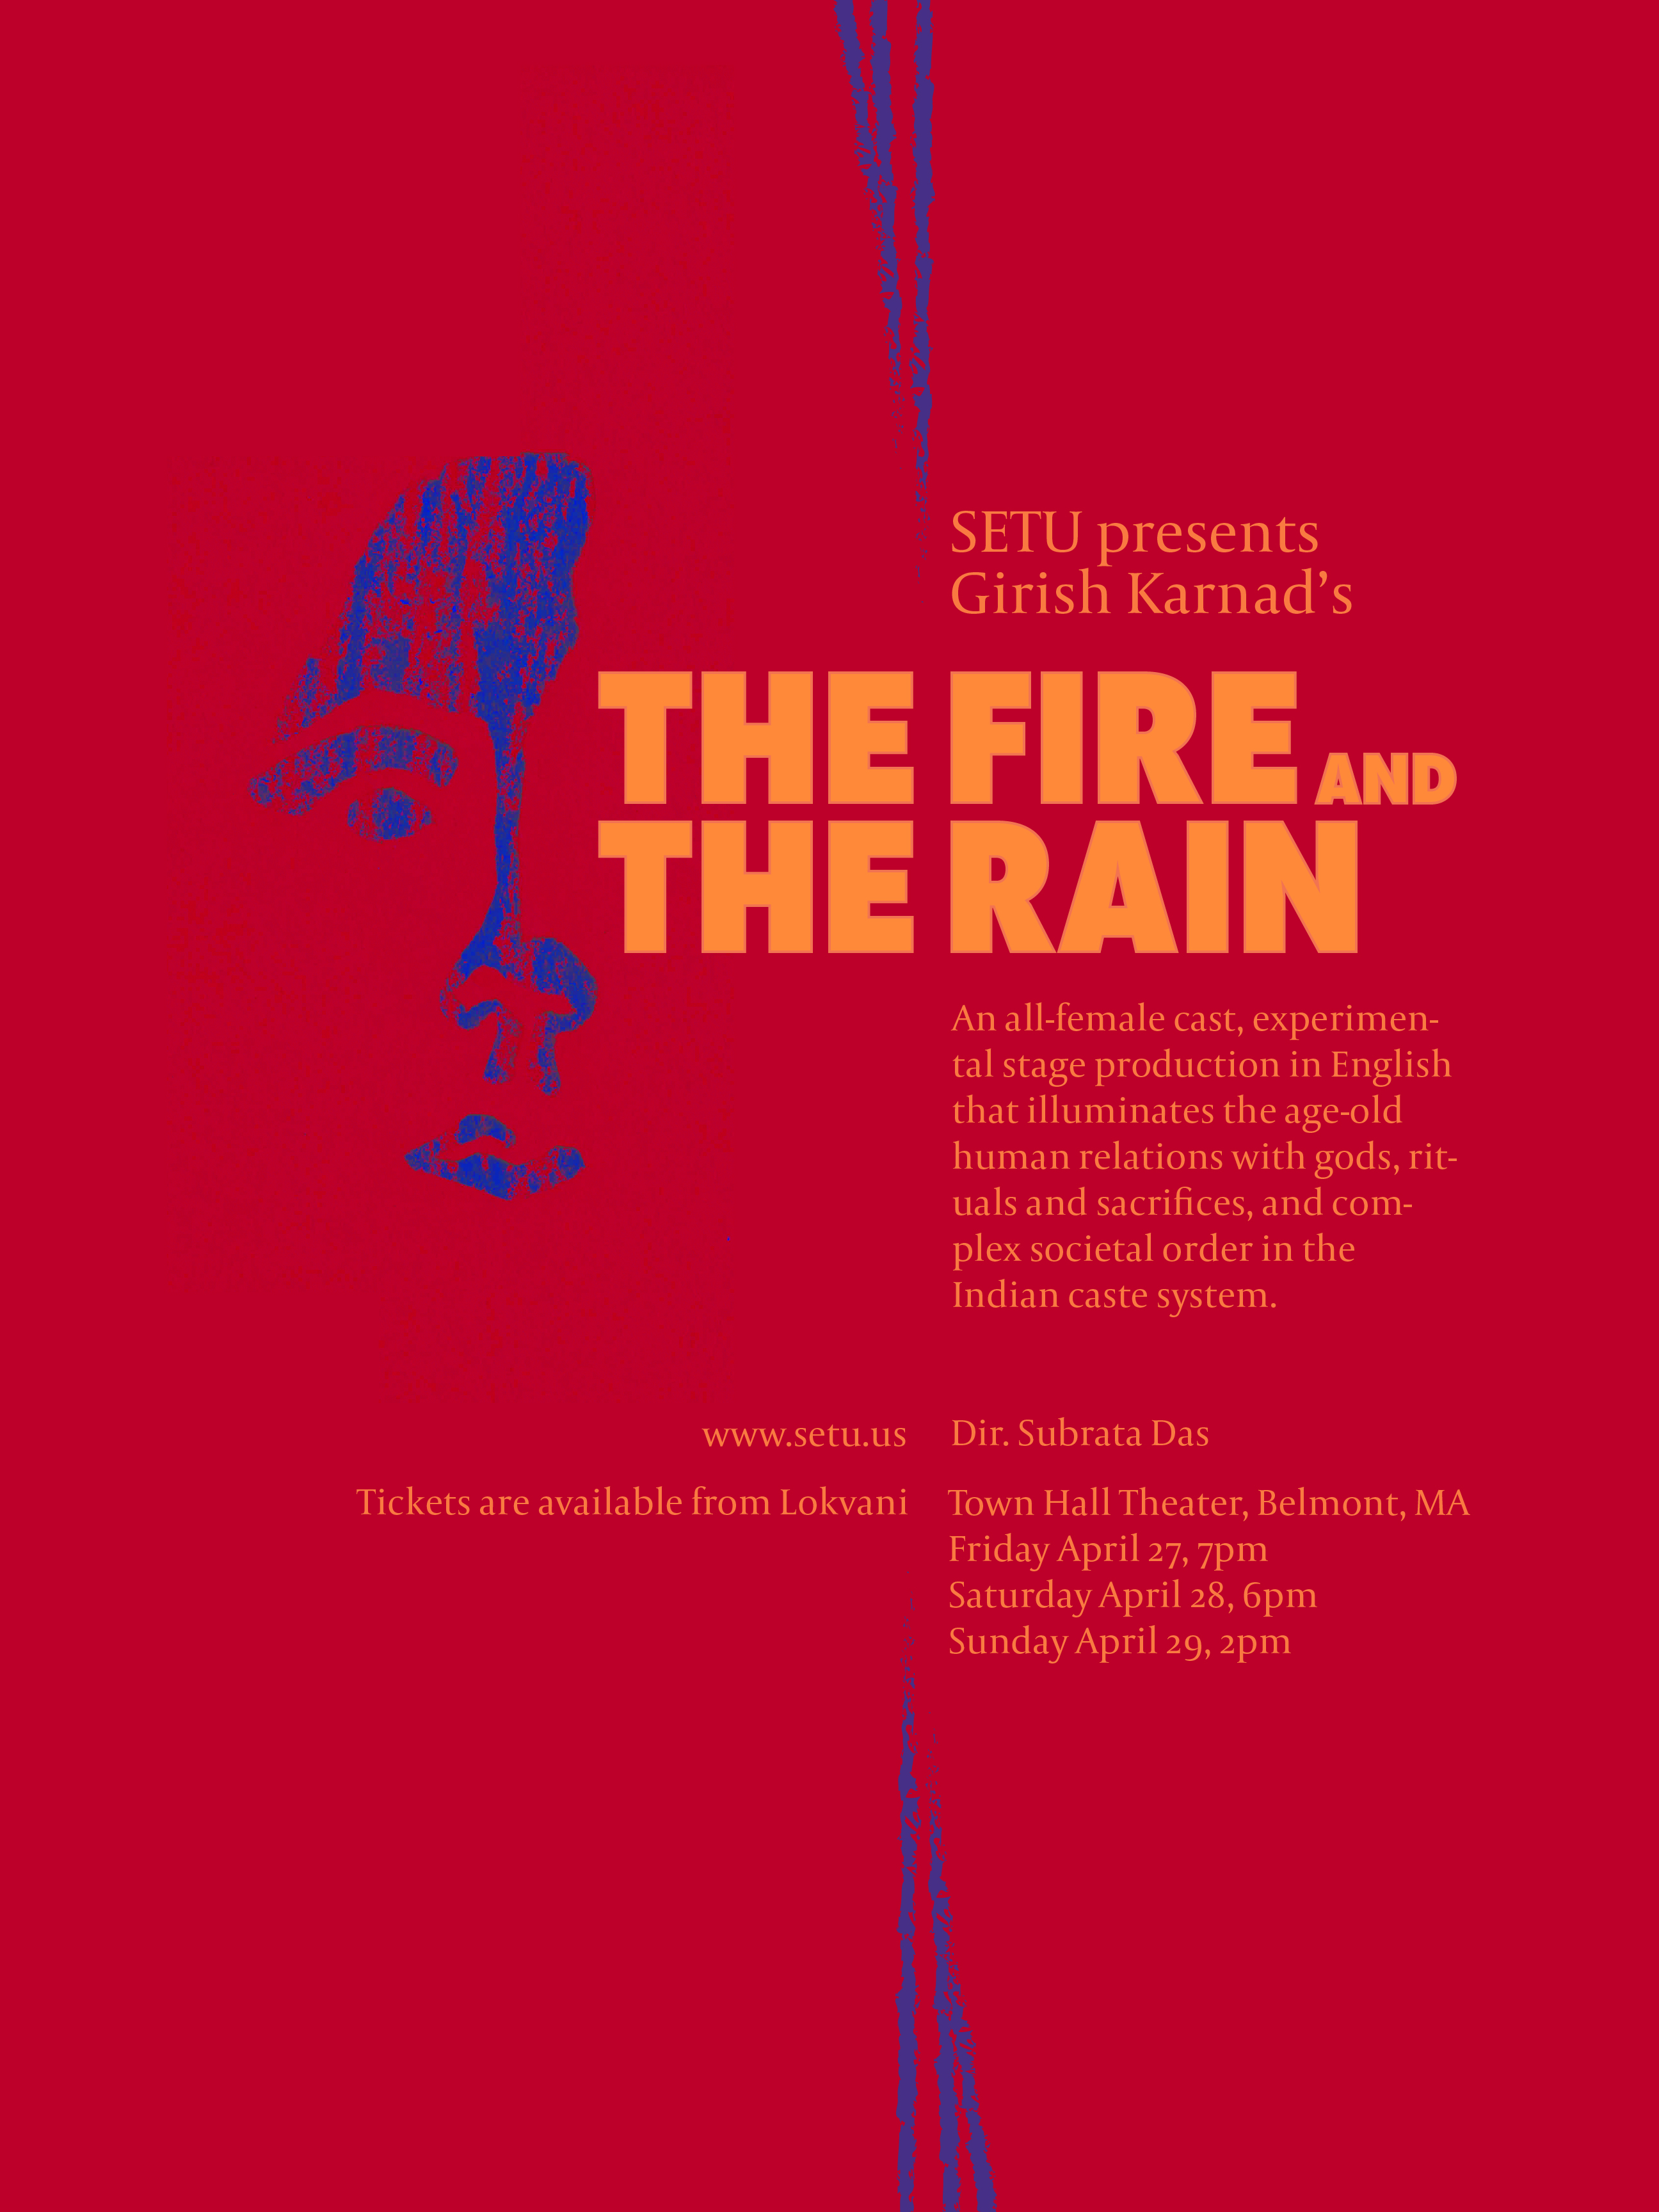 The Fire and The Rain